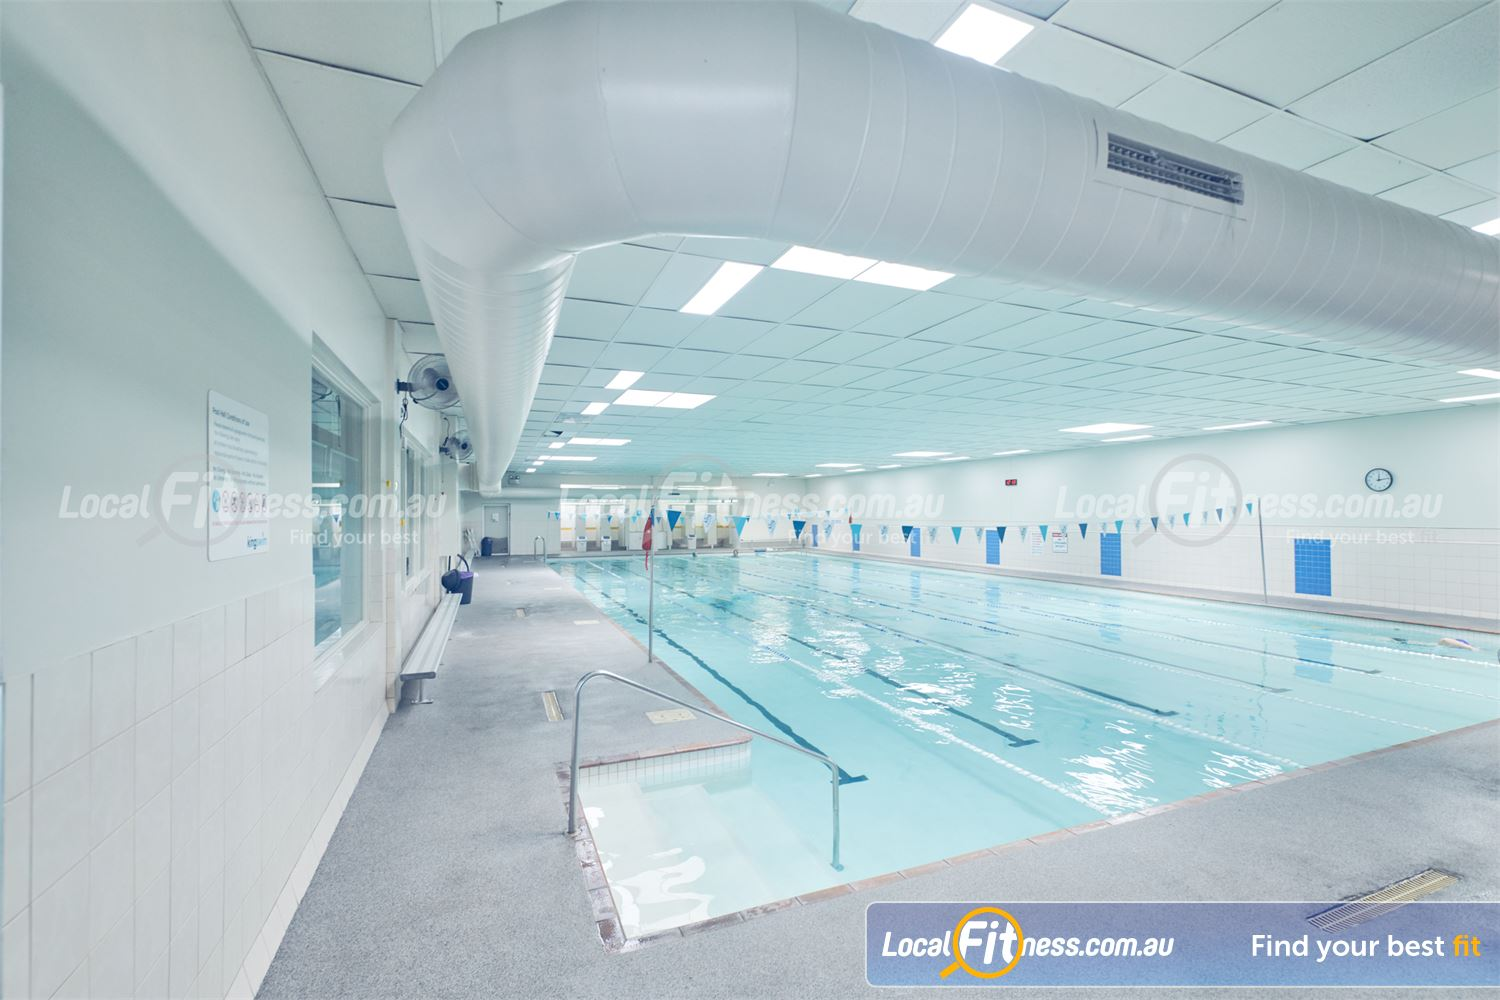 Goodlife Health Clubs Near Springvale South On-site Dingley swimming pool access for members.